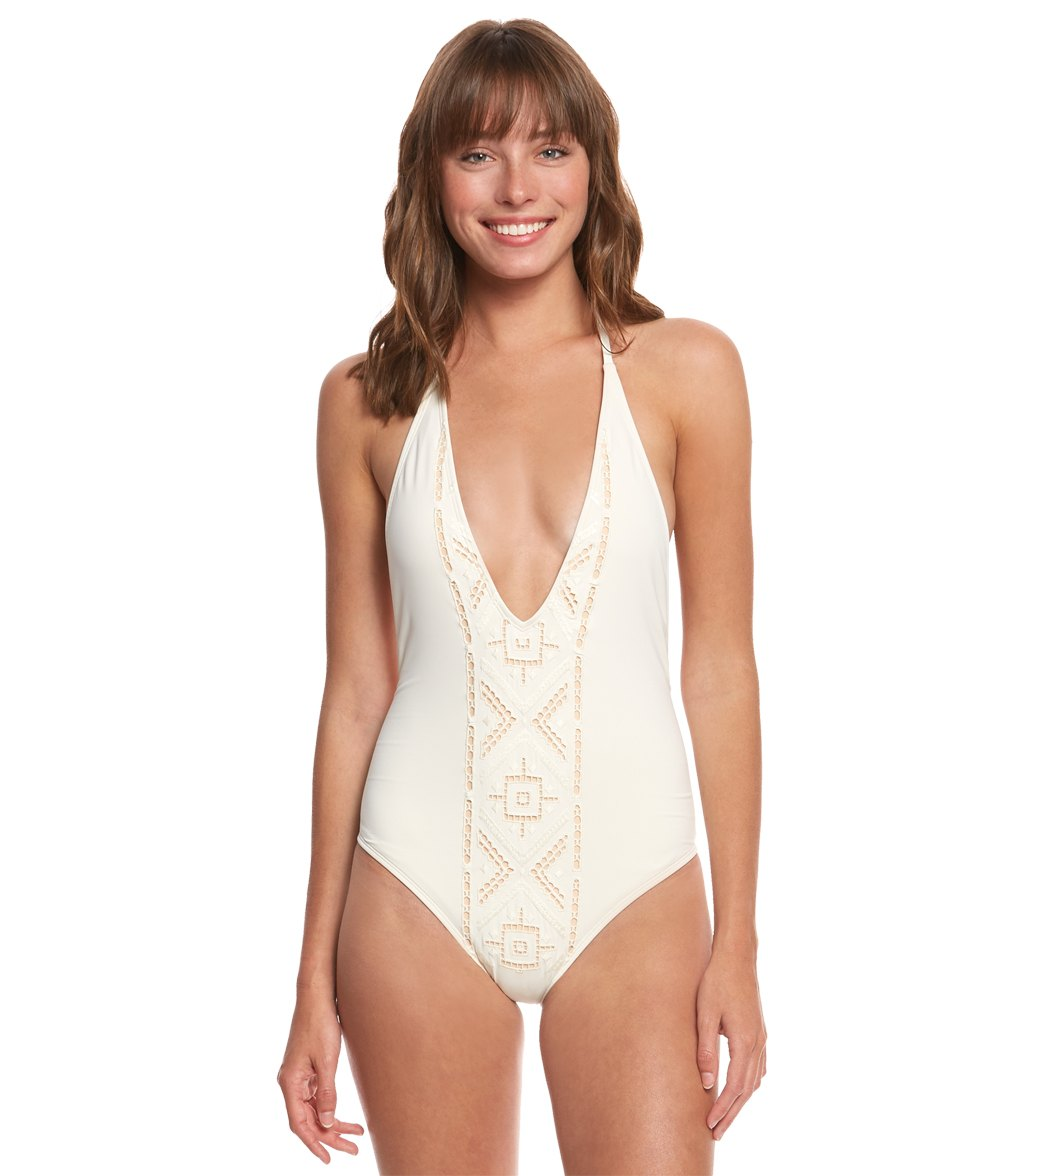 703f62c0b542b2 Billabong At Sea One Piece Swimsuit at SwimOutlet.com - Free Shipping